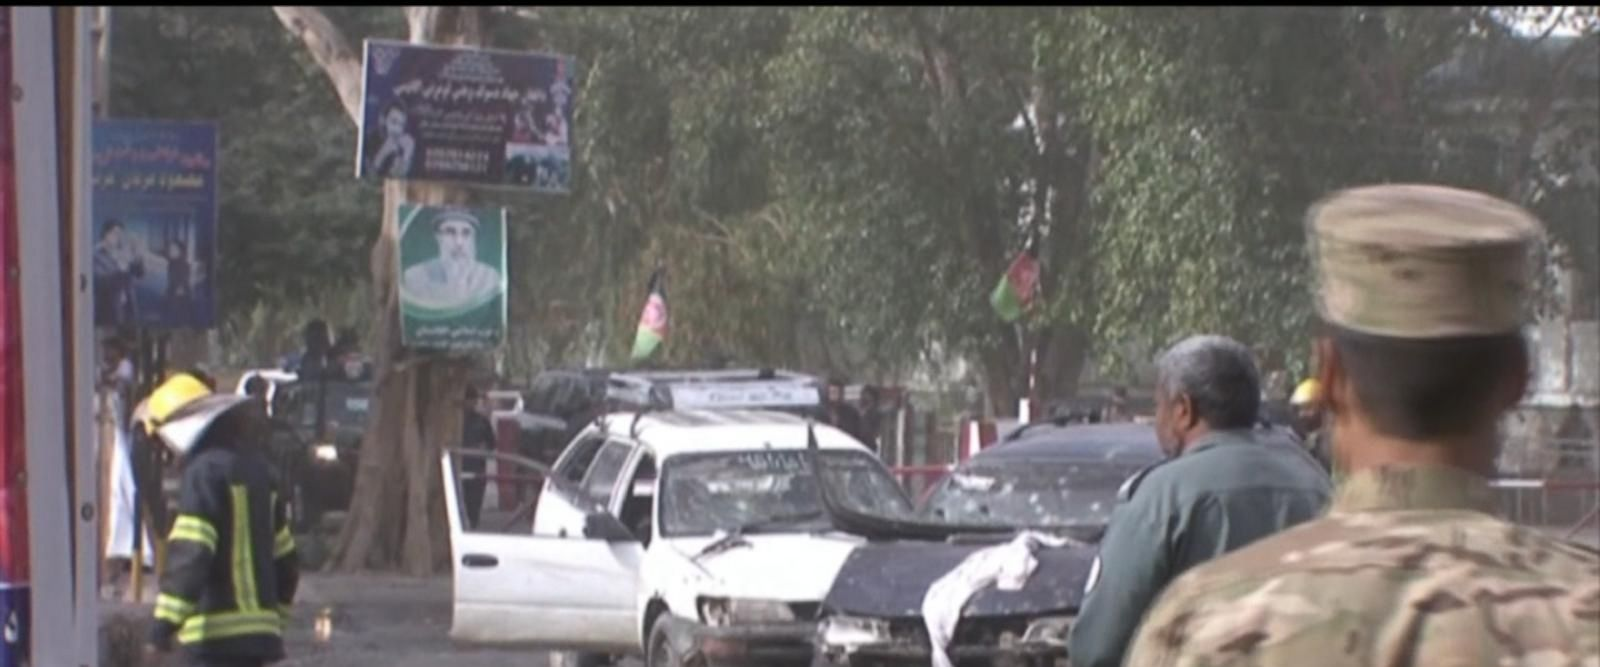 VIDEO: 2 suicide bombings end 3 days of peace in Afghanistan